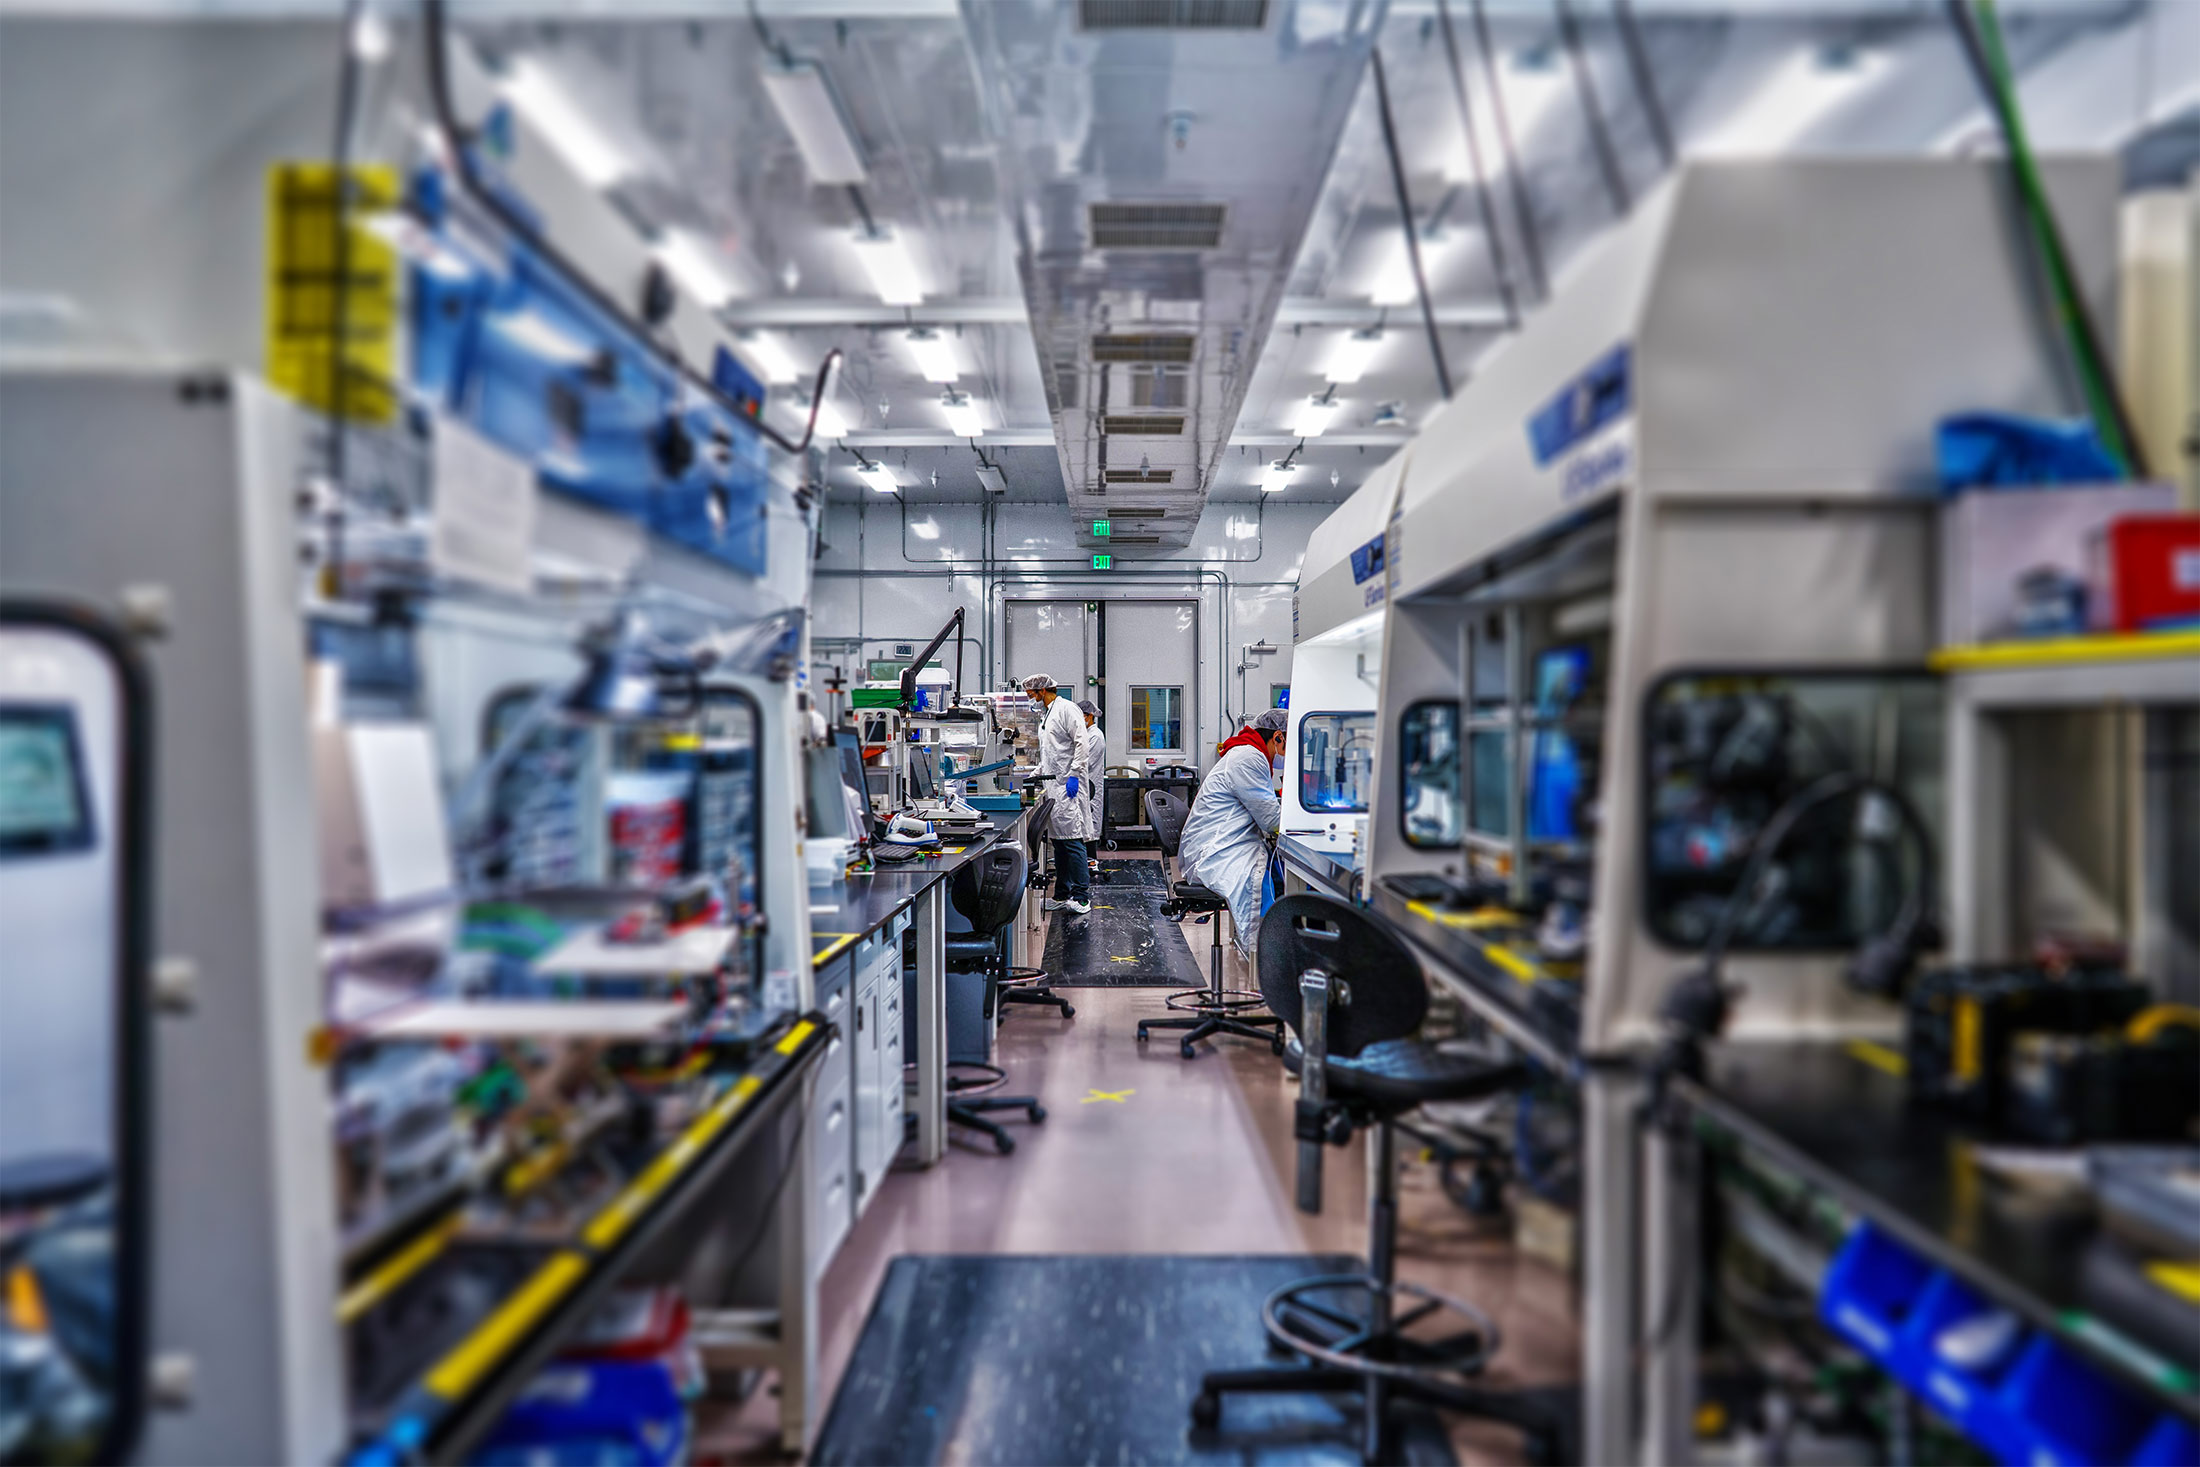 Stanford Scientists Create a Billionaire Factory From QuantumScape  Batteries - Bloomberg